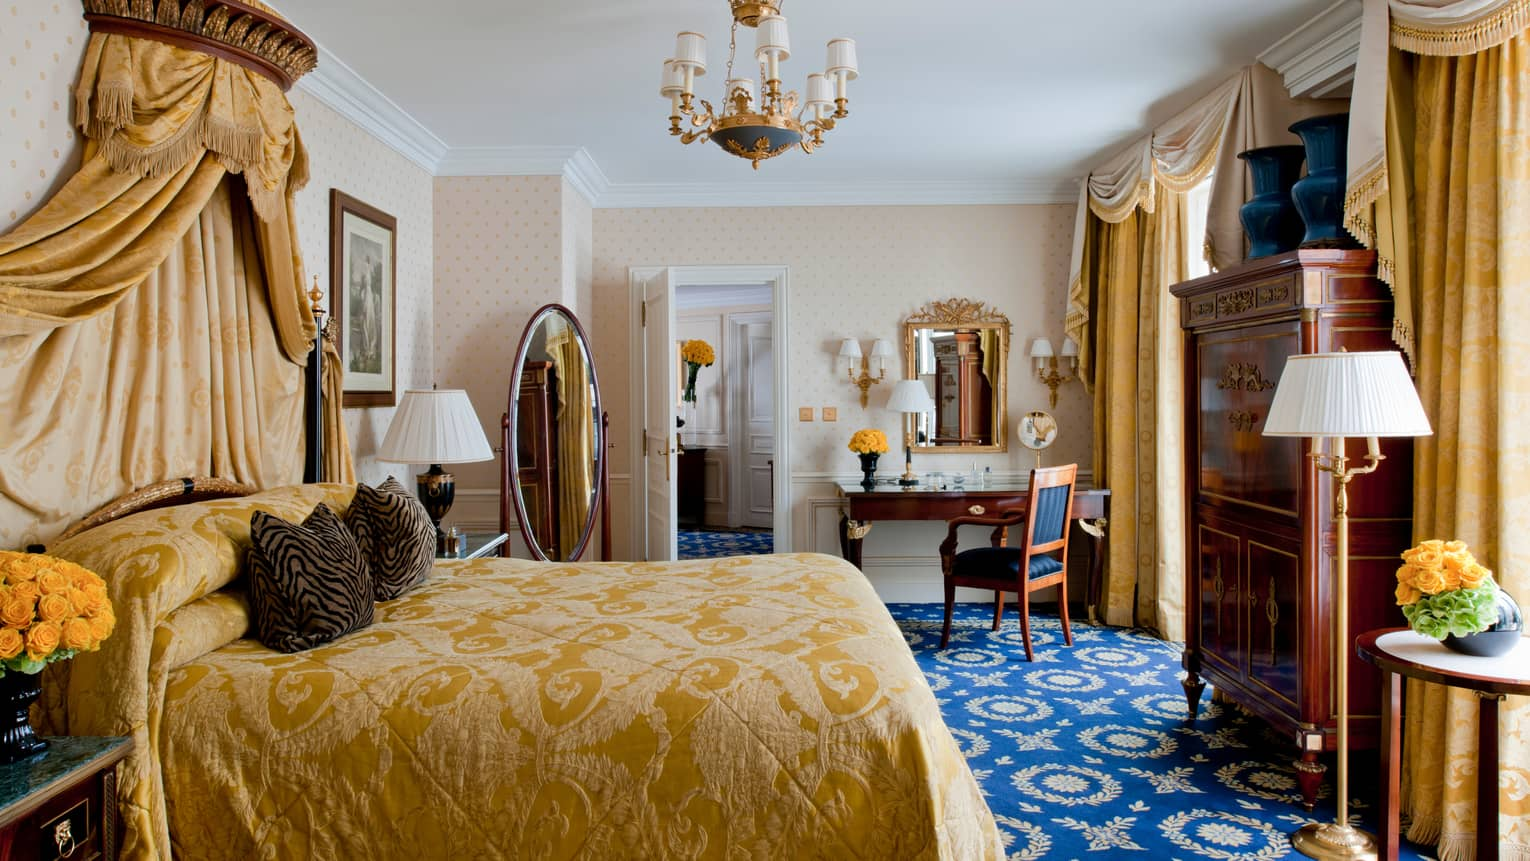 Empire Suite bed with embroidered gold bedspread, canopy across from oval floor mirror, wood dresser